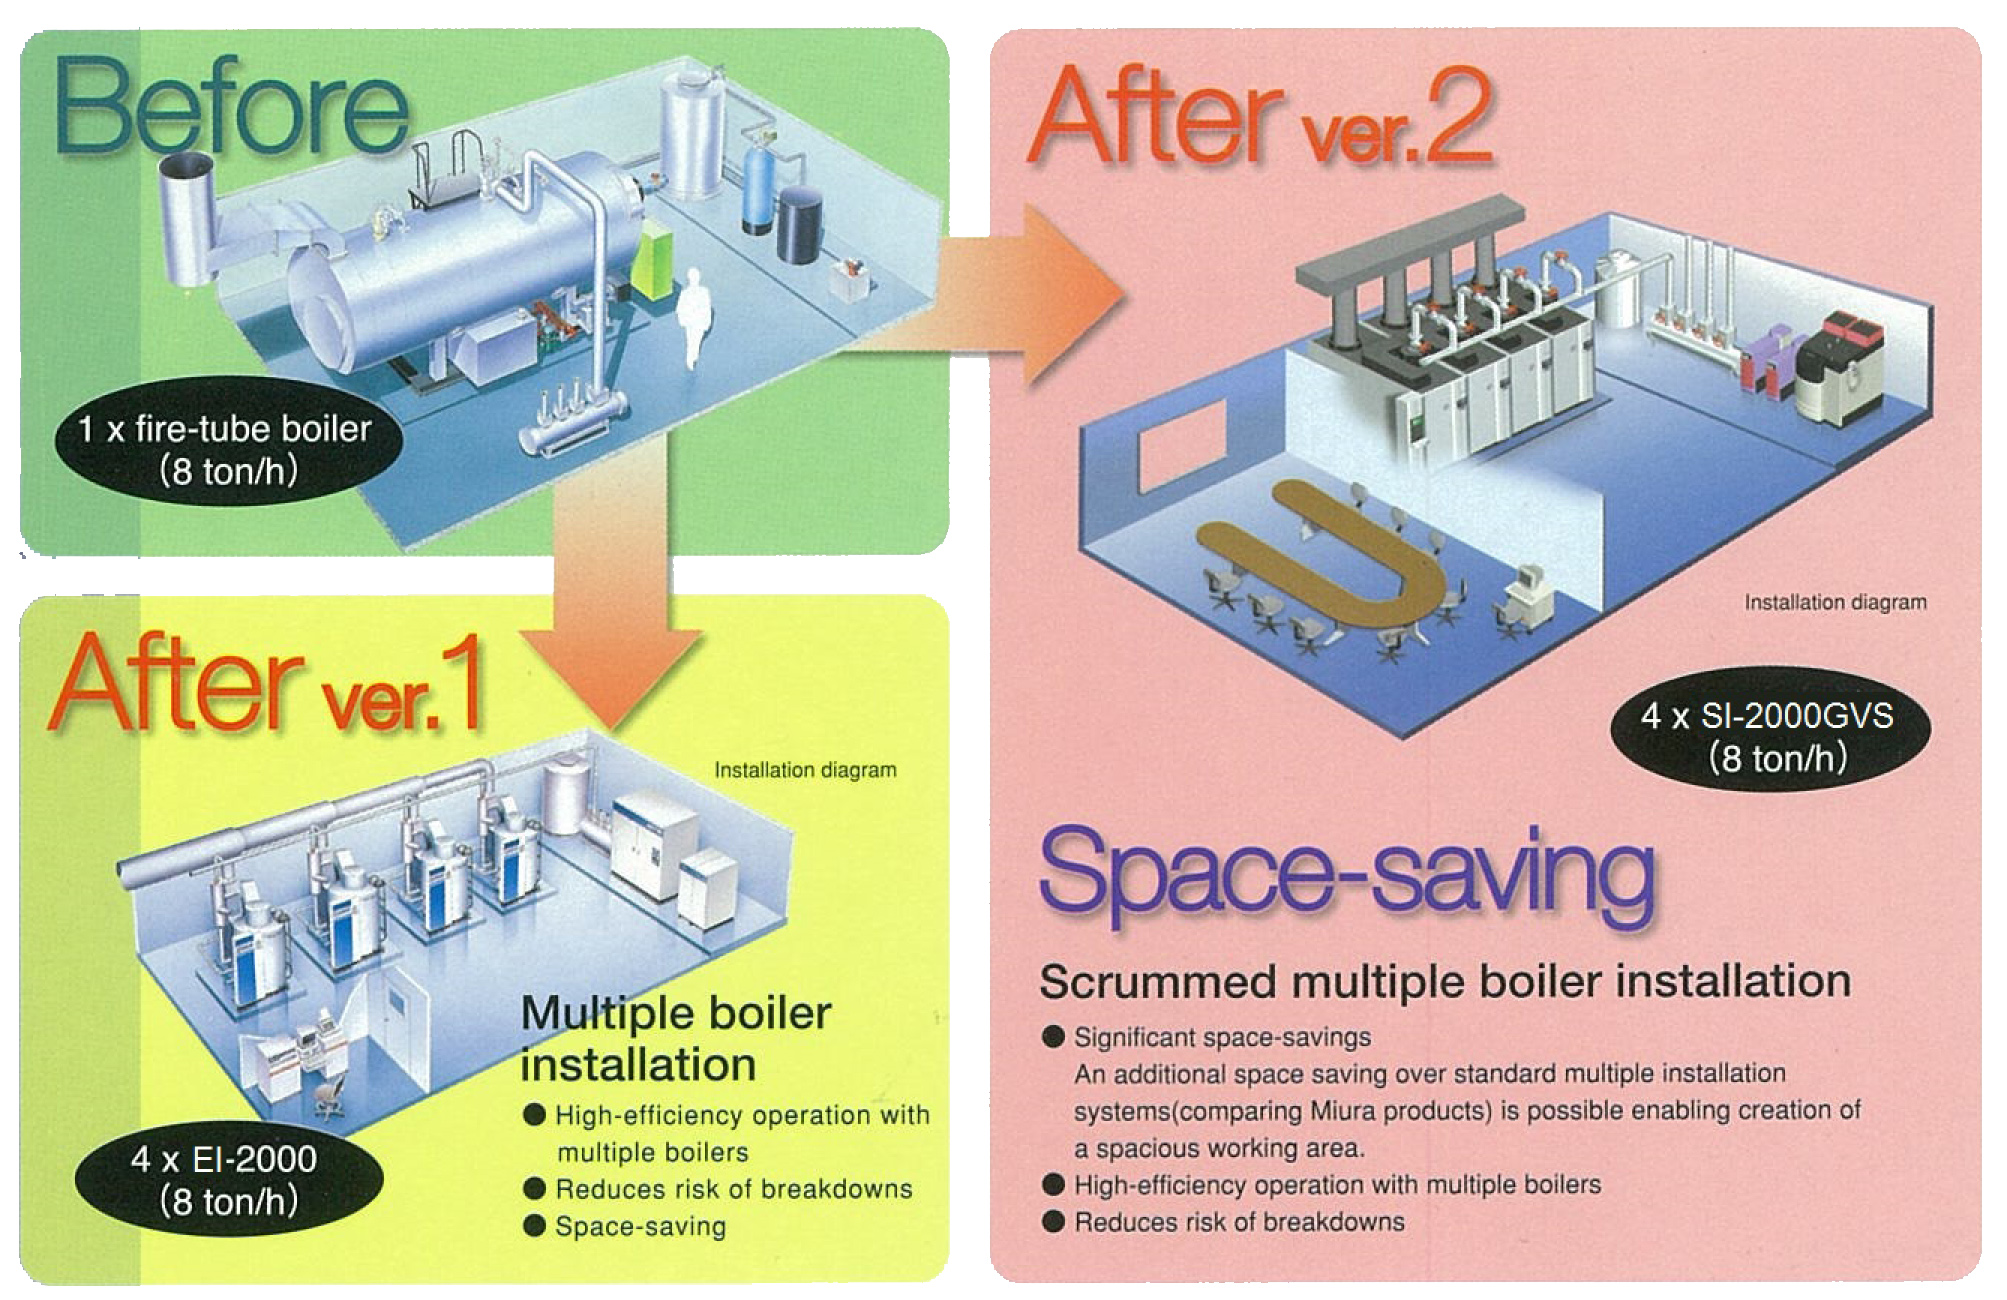 Miura Boiler Wiring Diagram Munchkin Luxury Manual Image Collection Electrical Iry Space Saving Why Pt Indonesia